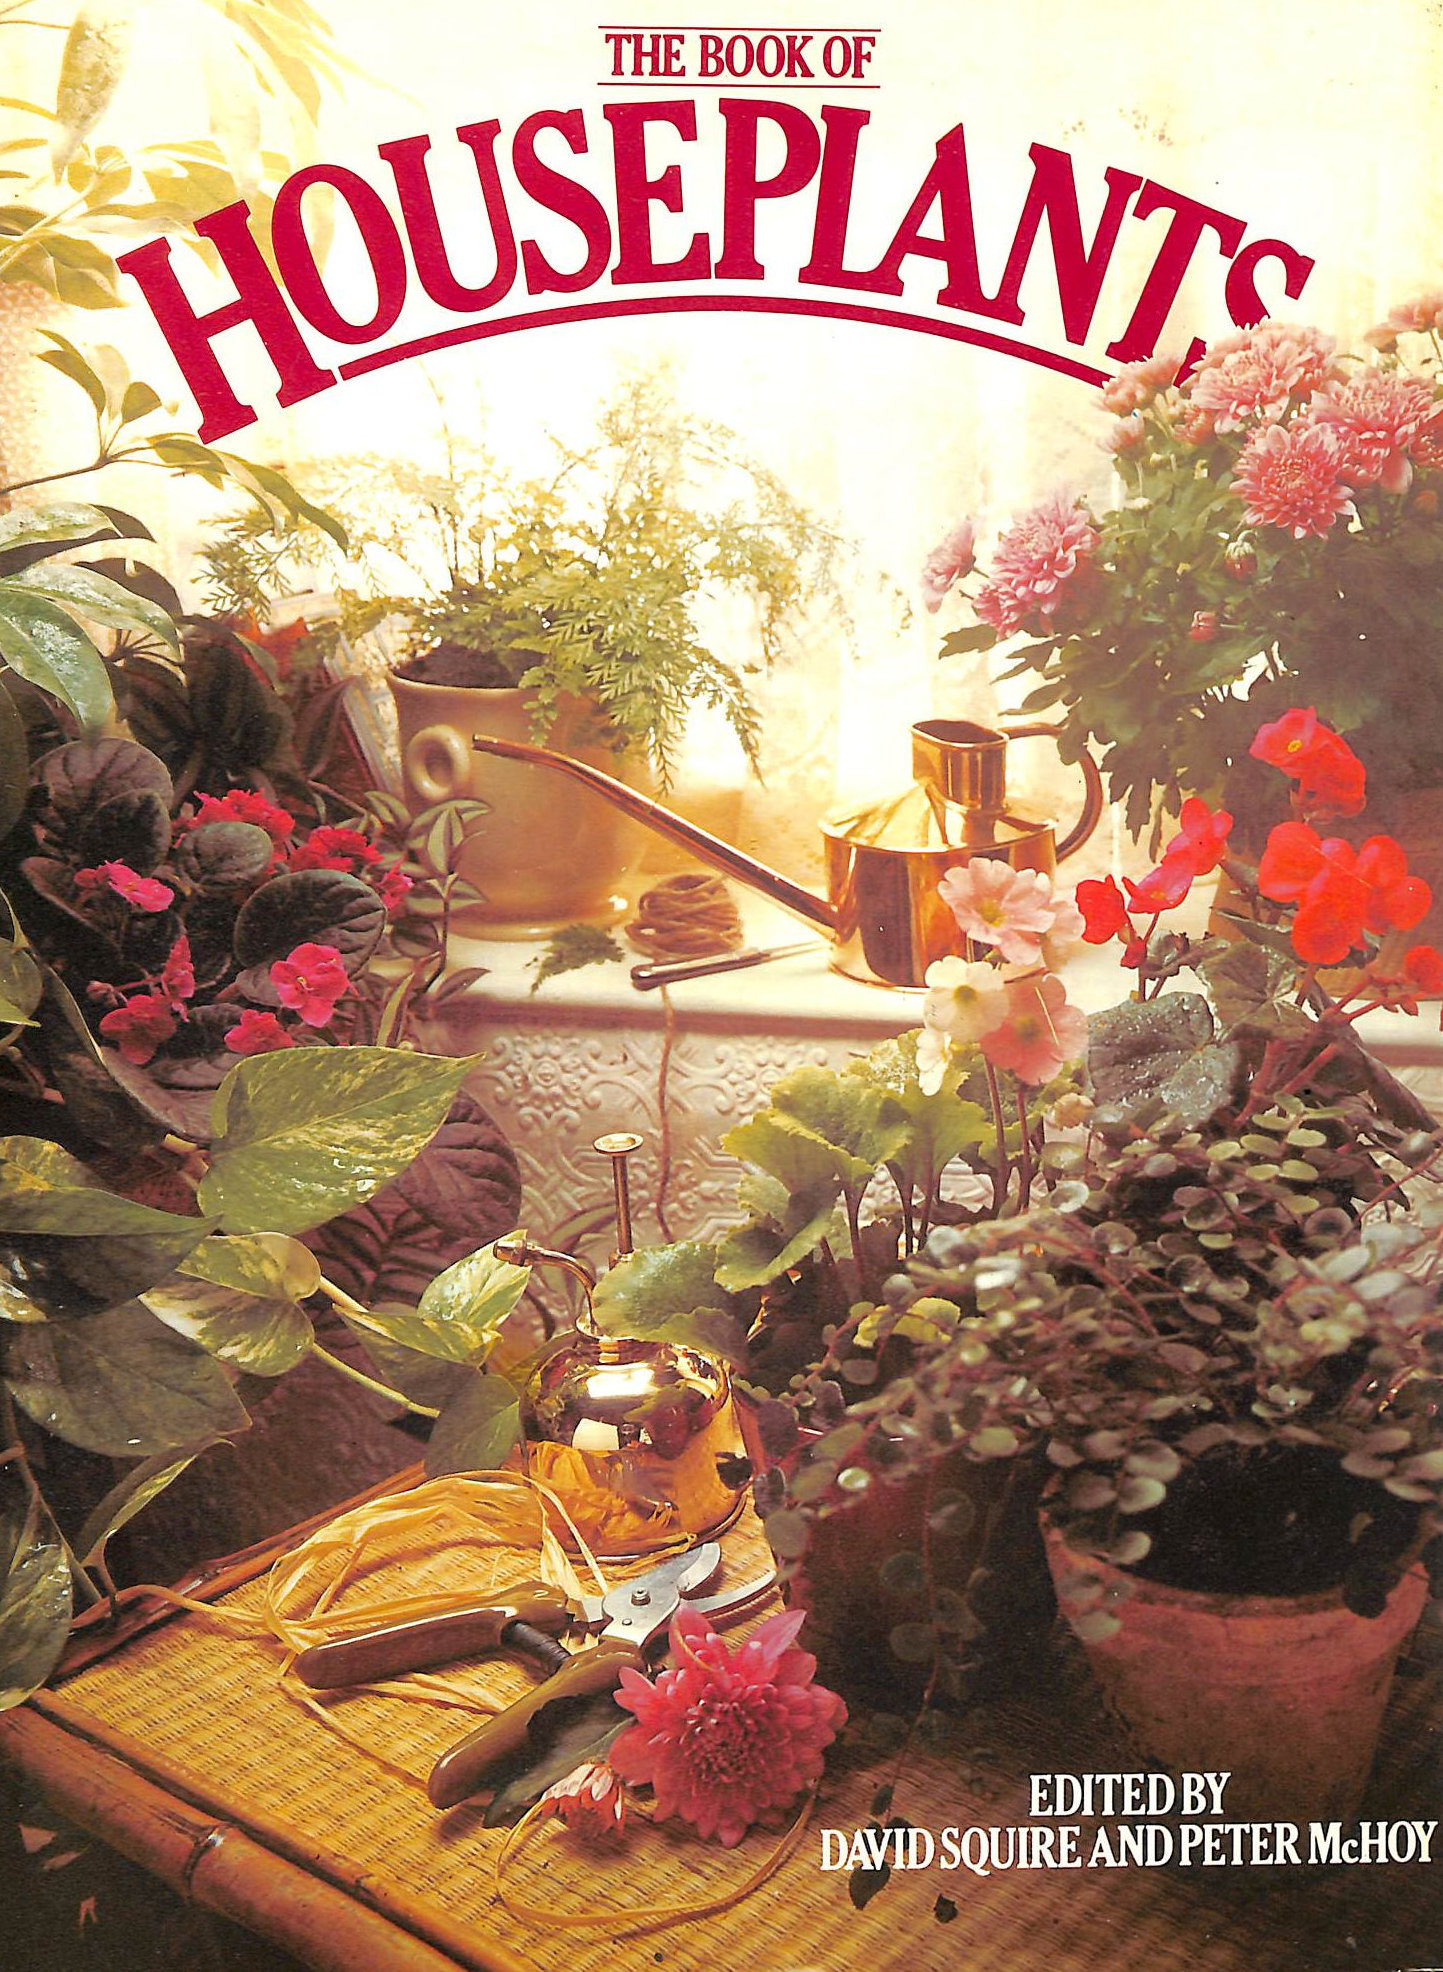 Image for Book of Houseplants